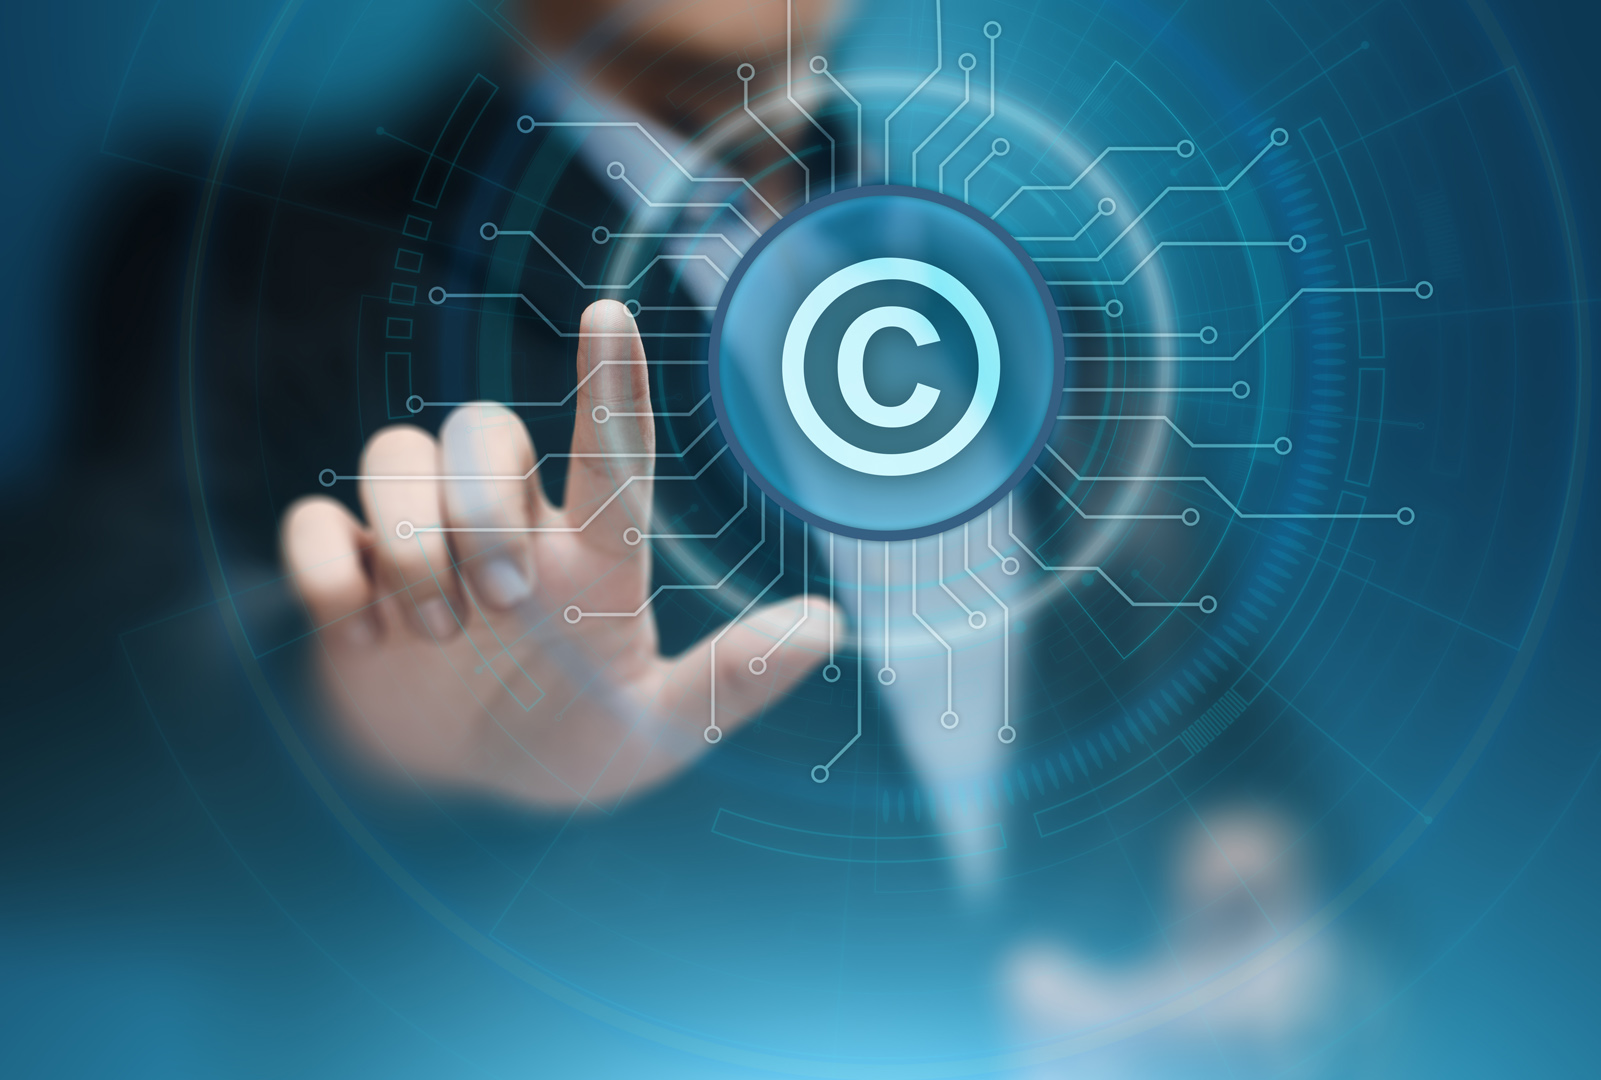 EU Copyright Intellectual Property